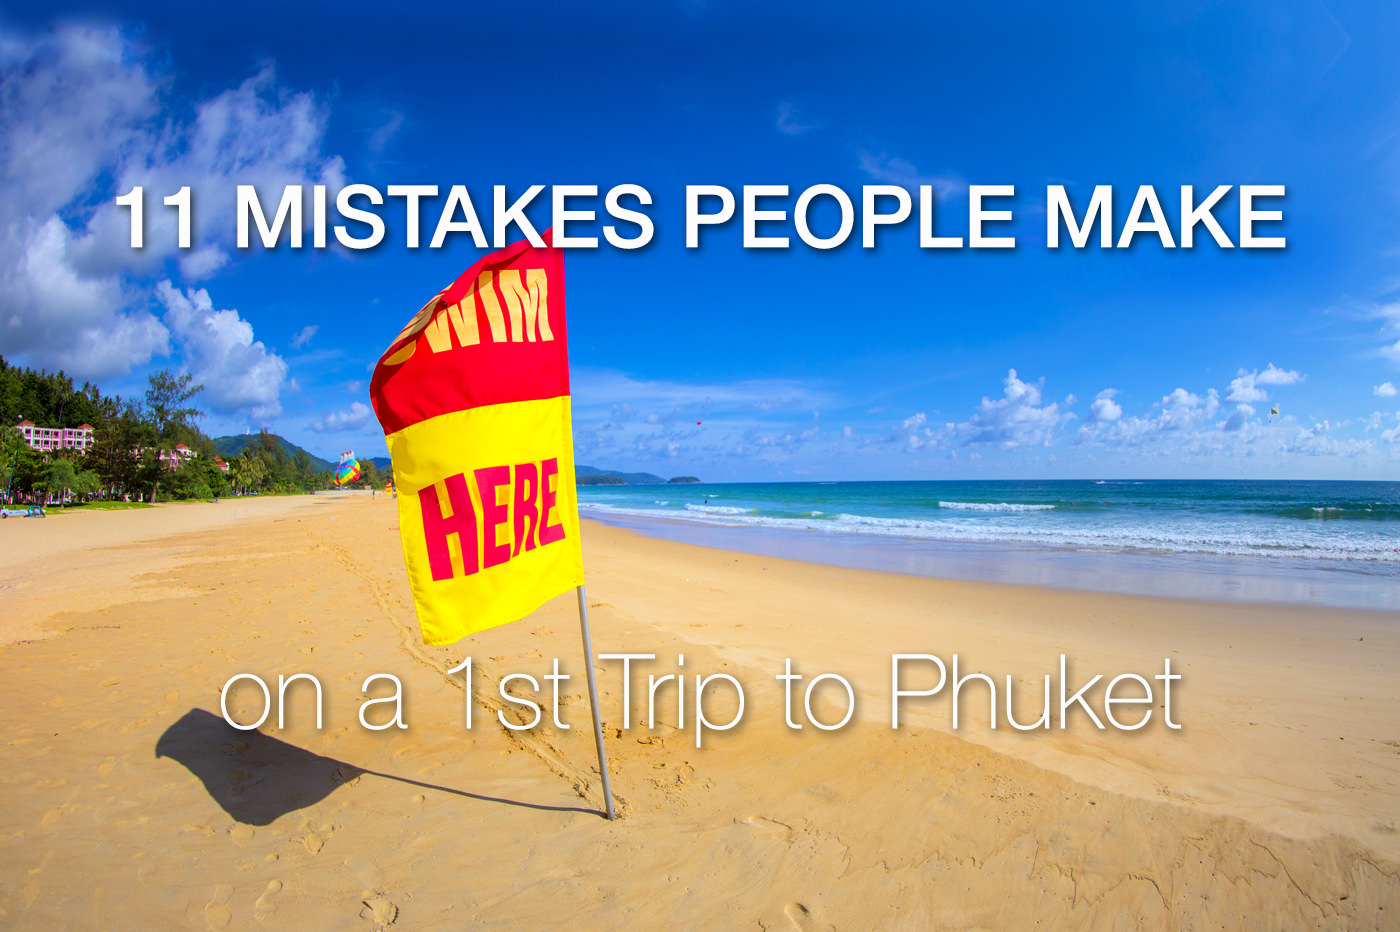 11 Mistakes People Make on a 1st Trip to Phuket (Updated)